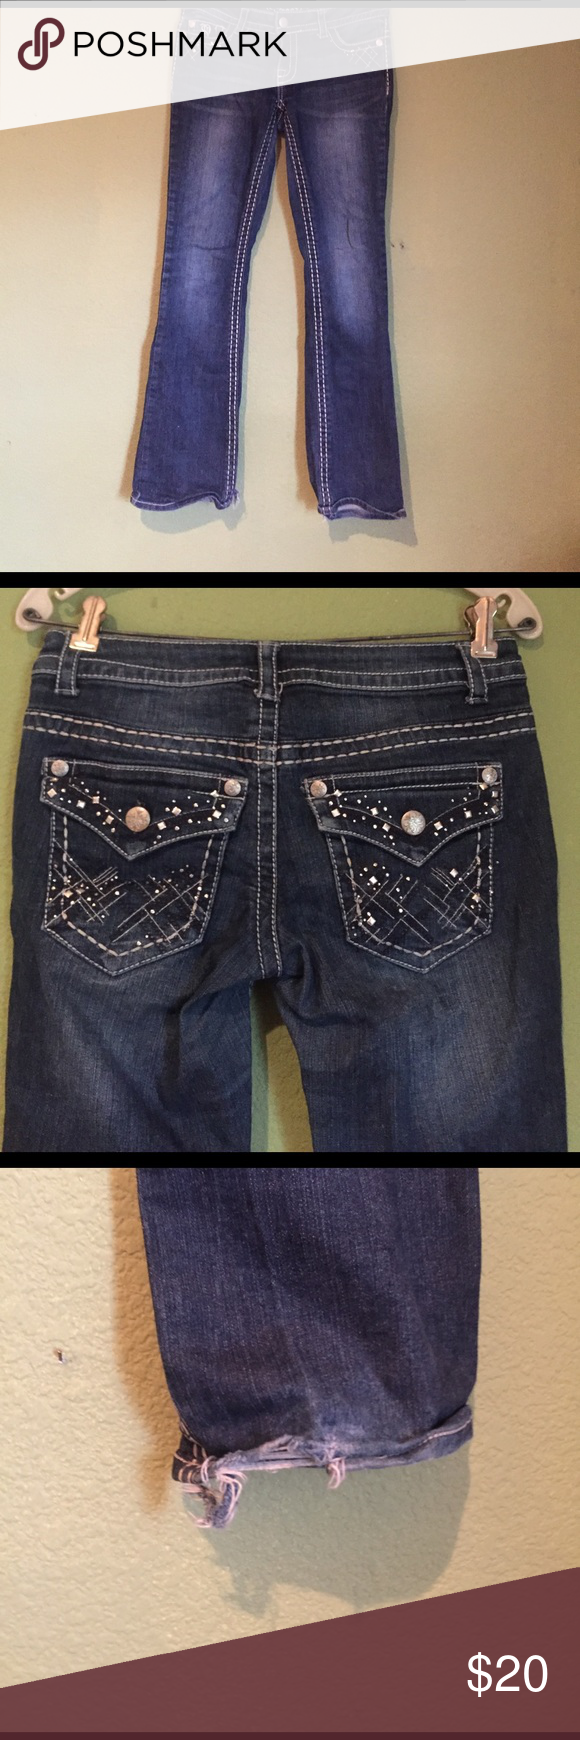 Jeweled Jeans Studded and Jeweled Jeans bought from Target; worn, but still good condition; frayed at the cuffs Jeans Boot Cut